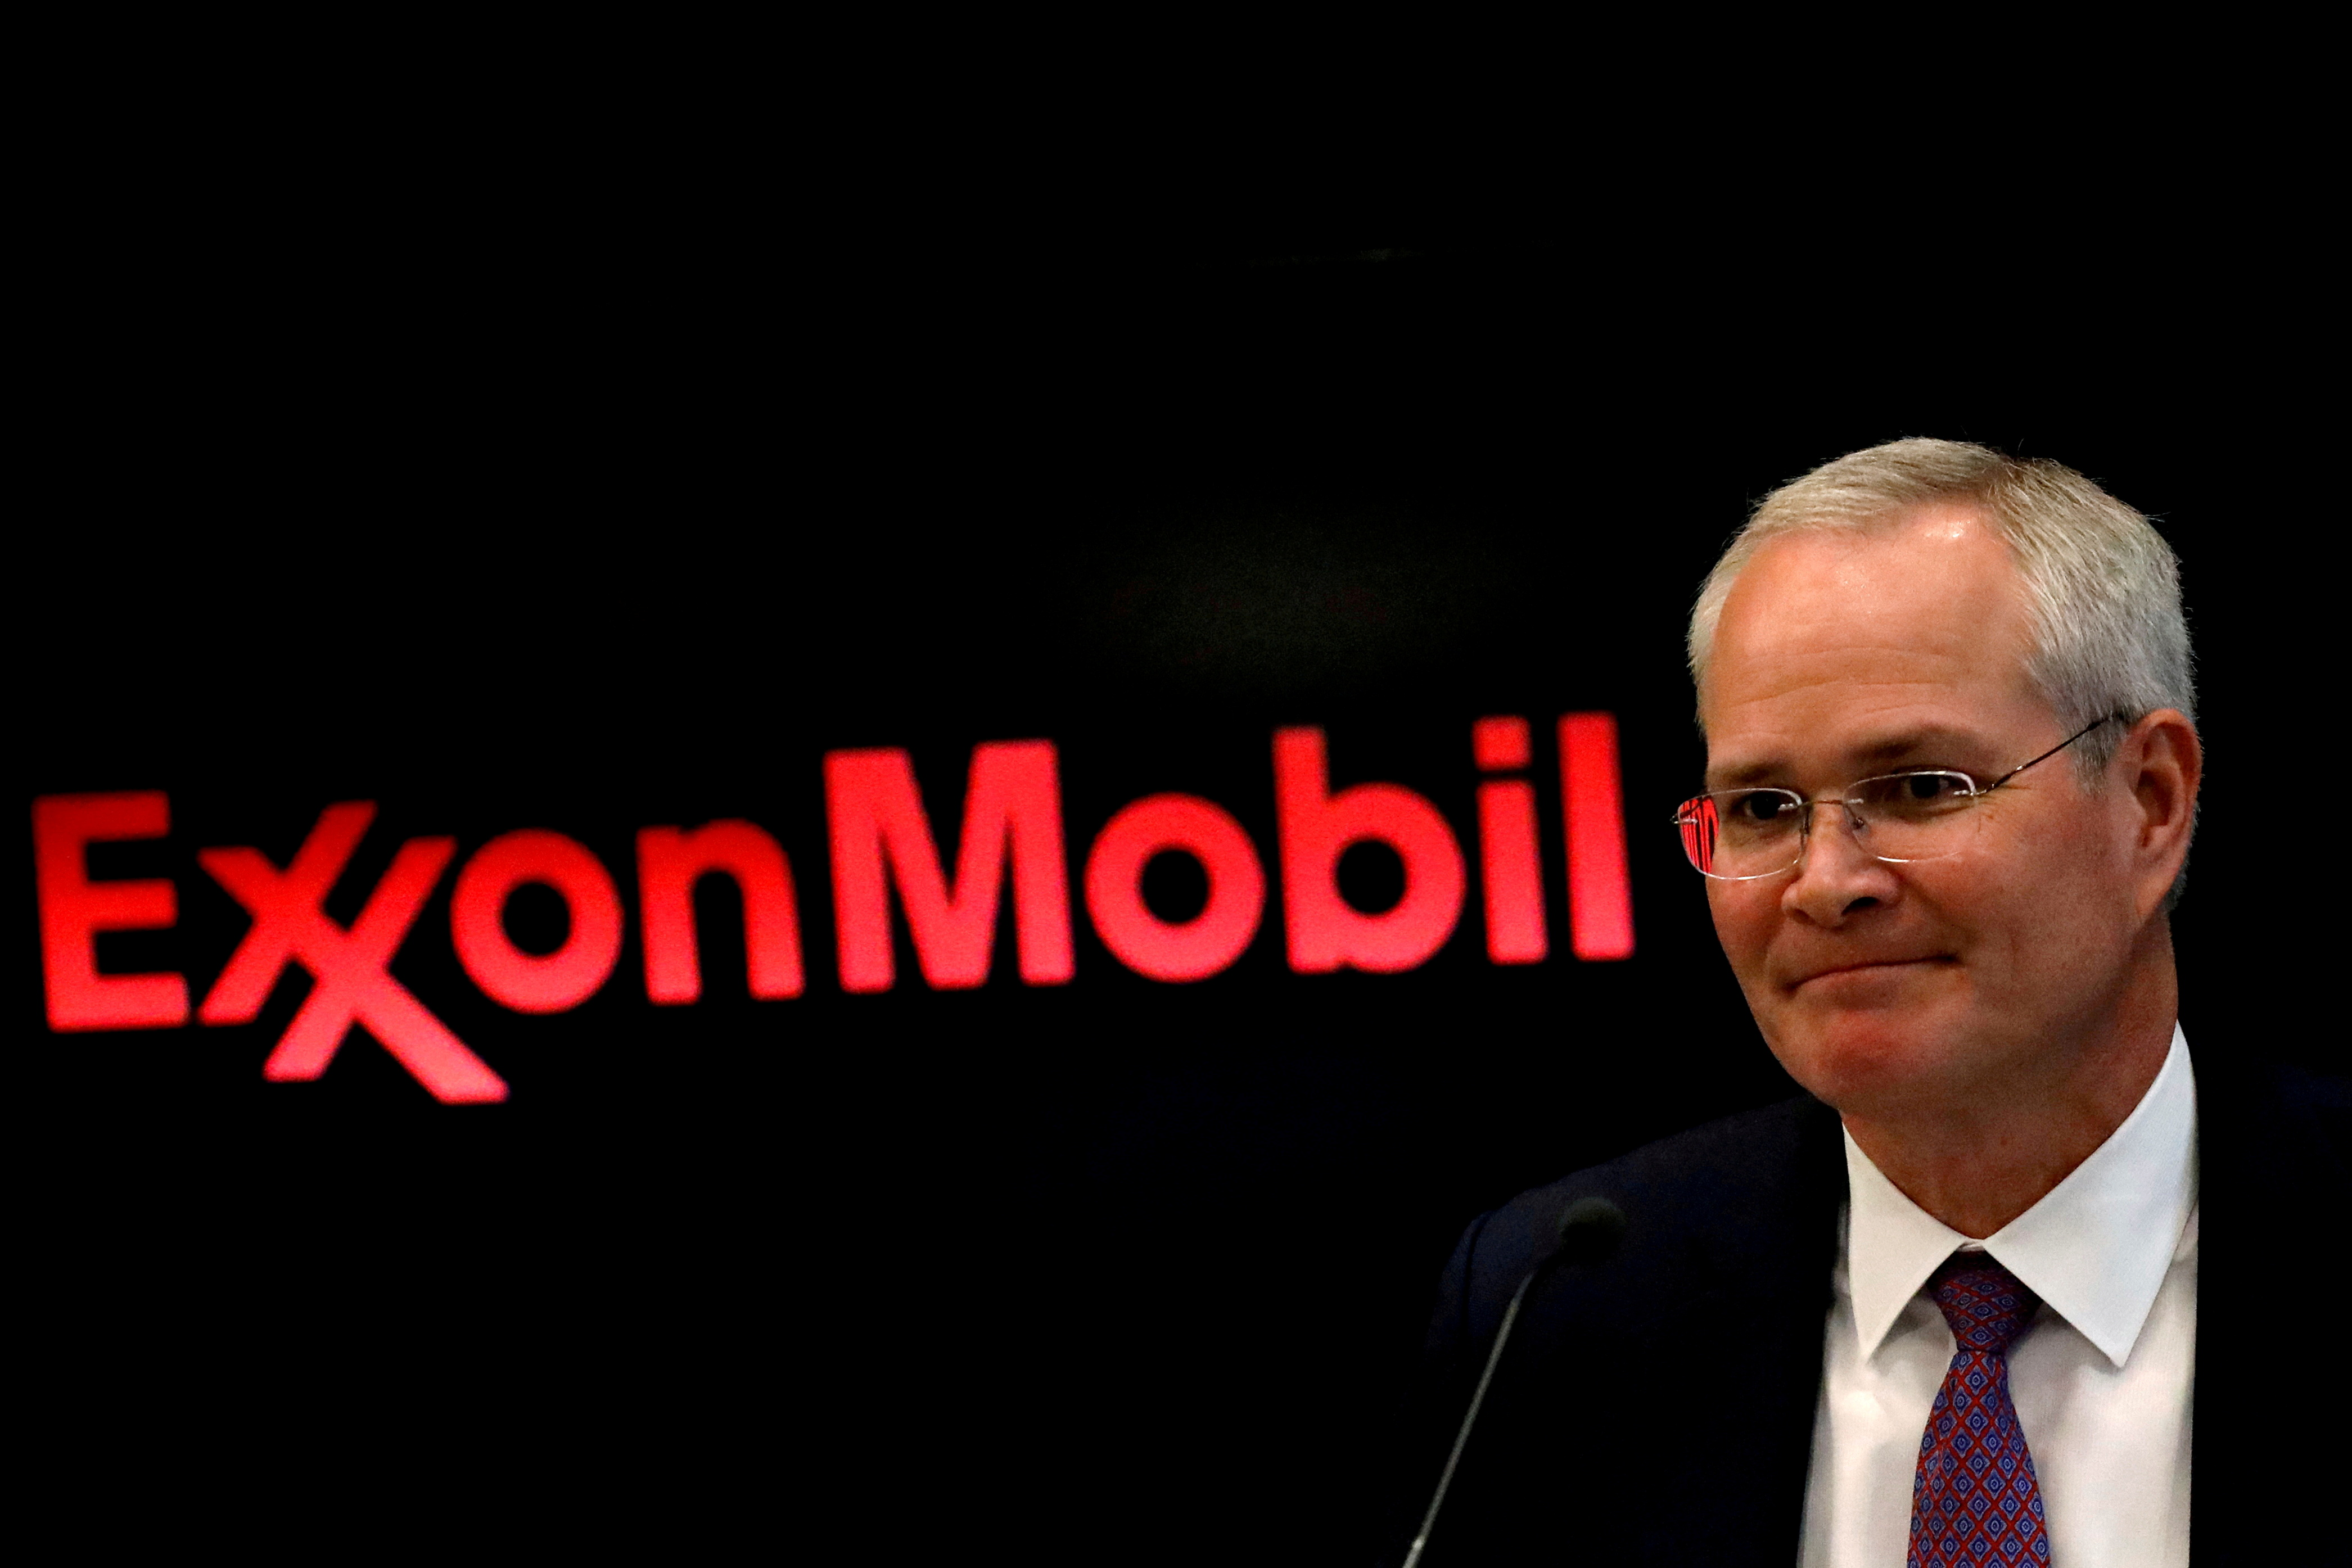 Darren Woods, Chairman & CEO of Exxon Mobil Corporation, attends a news conference at the New York Stock Exchange (NYSE) in New York, U.S., March 1, 2017. REUTERS/Brendan McDermid/File Photo